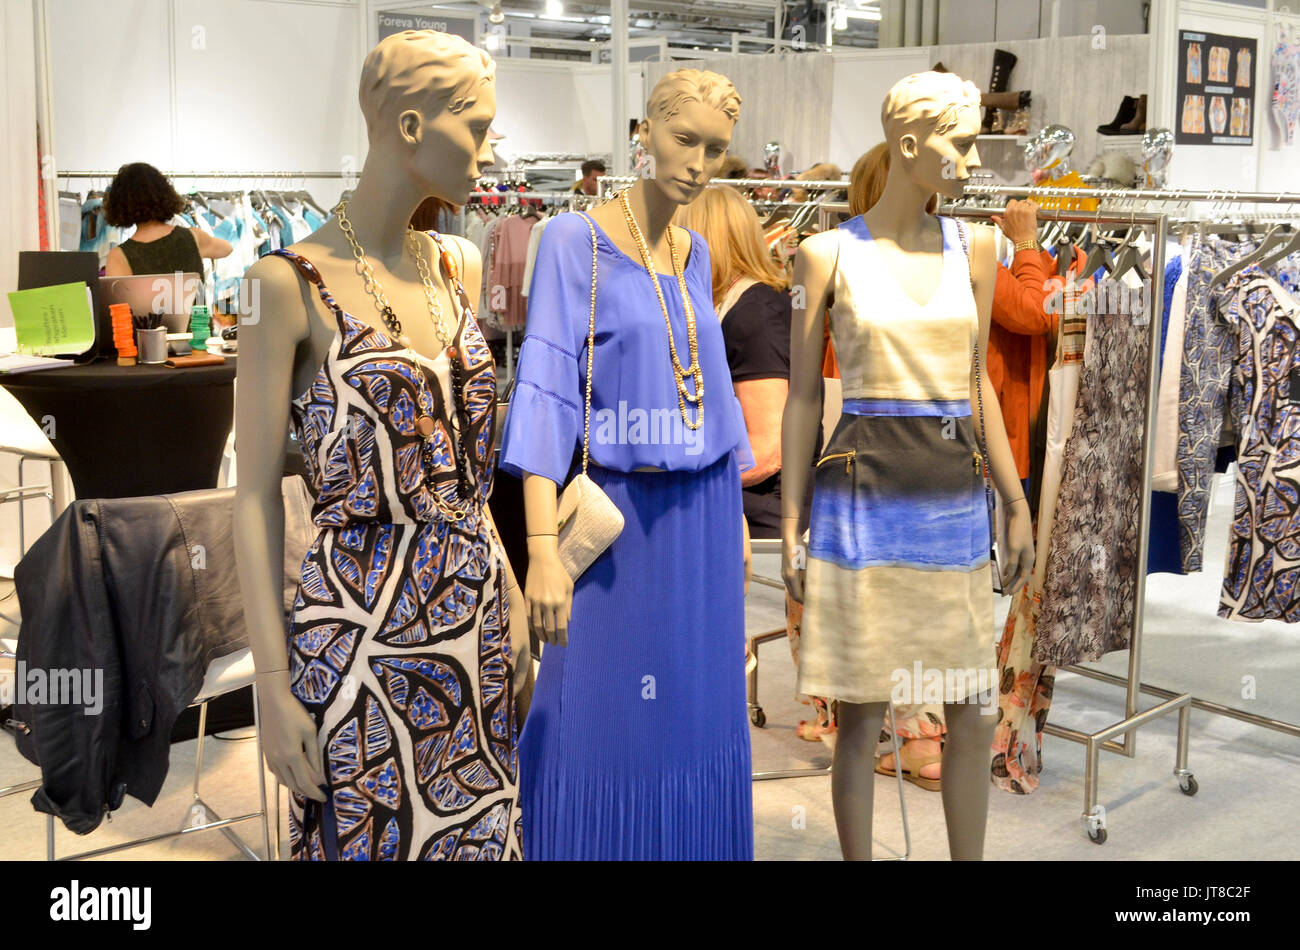 Birmingham, UK. 07th Aug, 2017. Mannequins at Moda. Moda, Britain's largest trade exhibition for fashion buyers, runs between 6th-8th August 2017 at the NEC, Birmingham, UK. Featuring daily catwalks, business talks by industry and social media experts, and hundreds of trade stands, Moda encompasses womenswear, menswear, footwear, and accessories for national and international fashion buyers. High visistor numbers and brisk trade were reported across both the first and second days of the show with many brands premiering their Spring Summer 2018 ranges. 7th August 2017. Credit: Antony Nettle/Ala - Stock Image